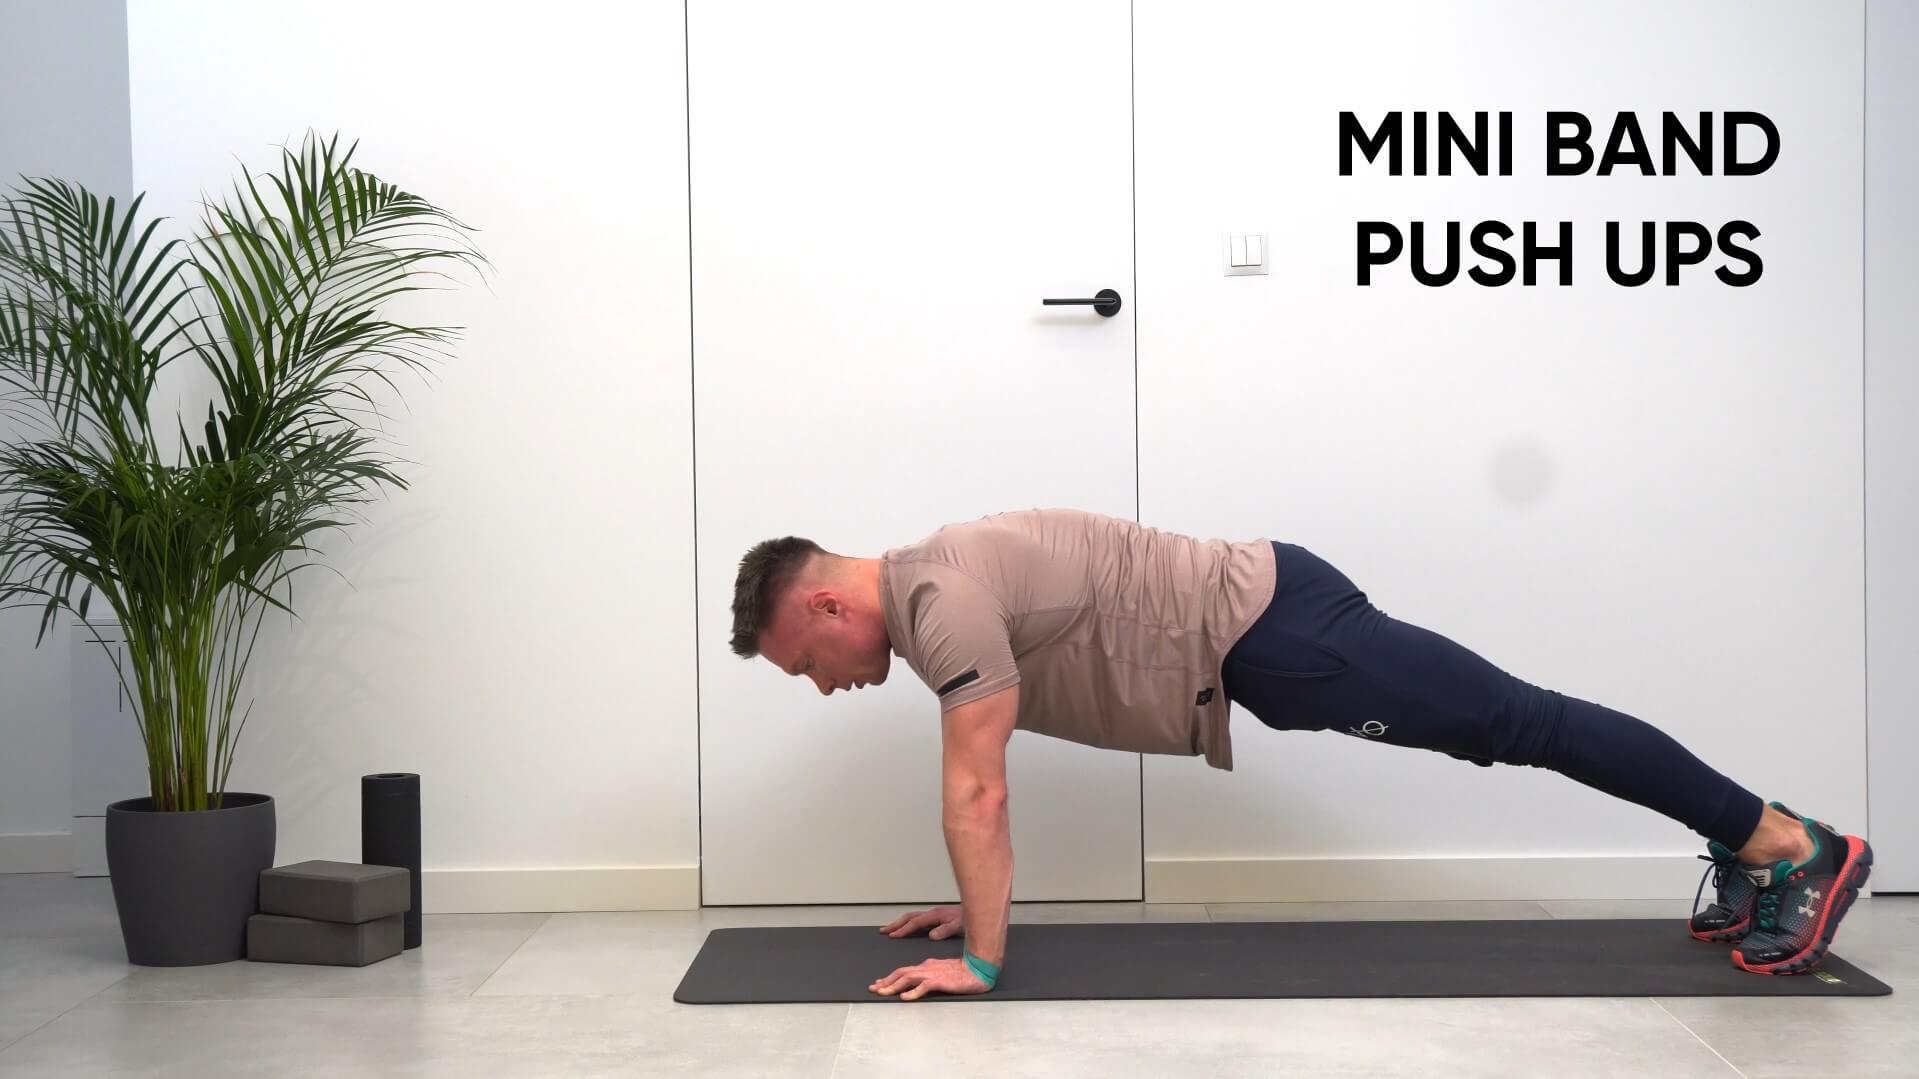 Mini band pushups